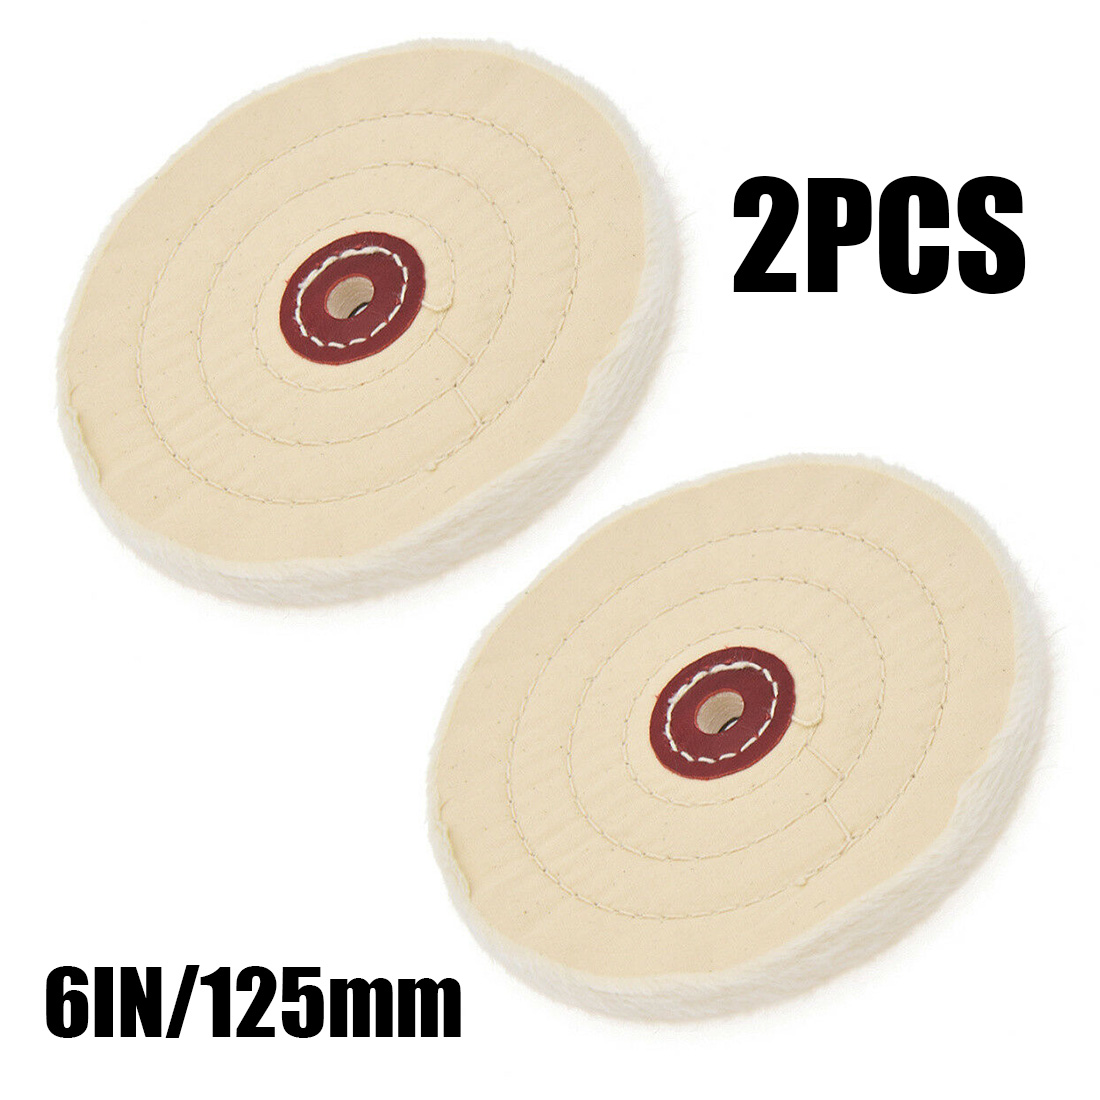 2Pcs 6Inch Cloth Buffing Polishing Wheel Buffer Jewelry Grinder Pad Handcraft Brand New And High Quality